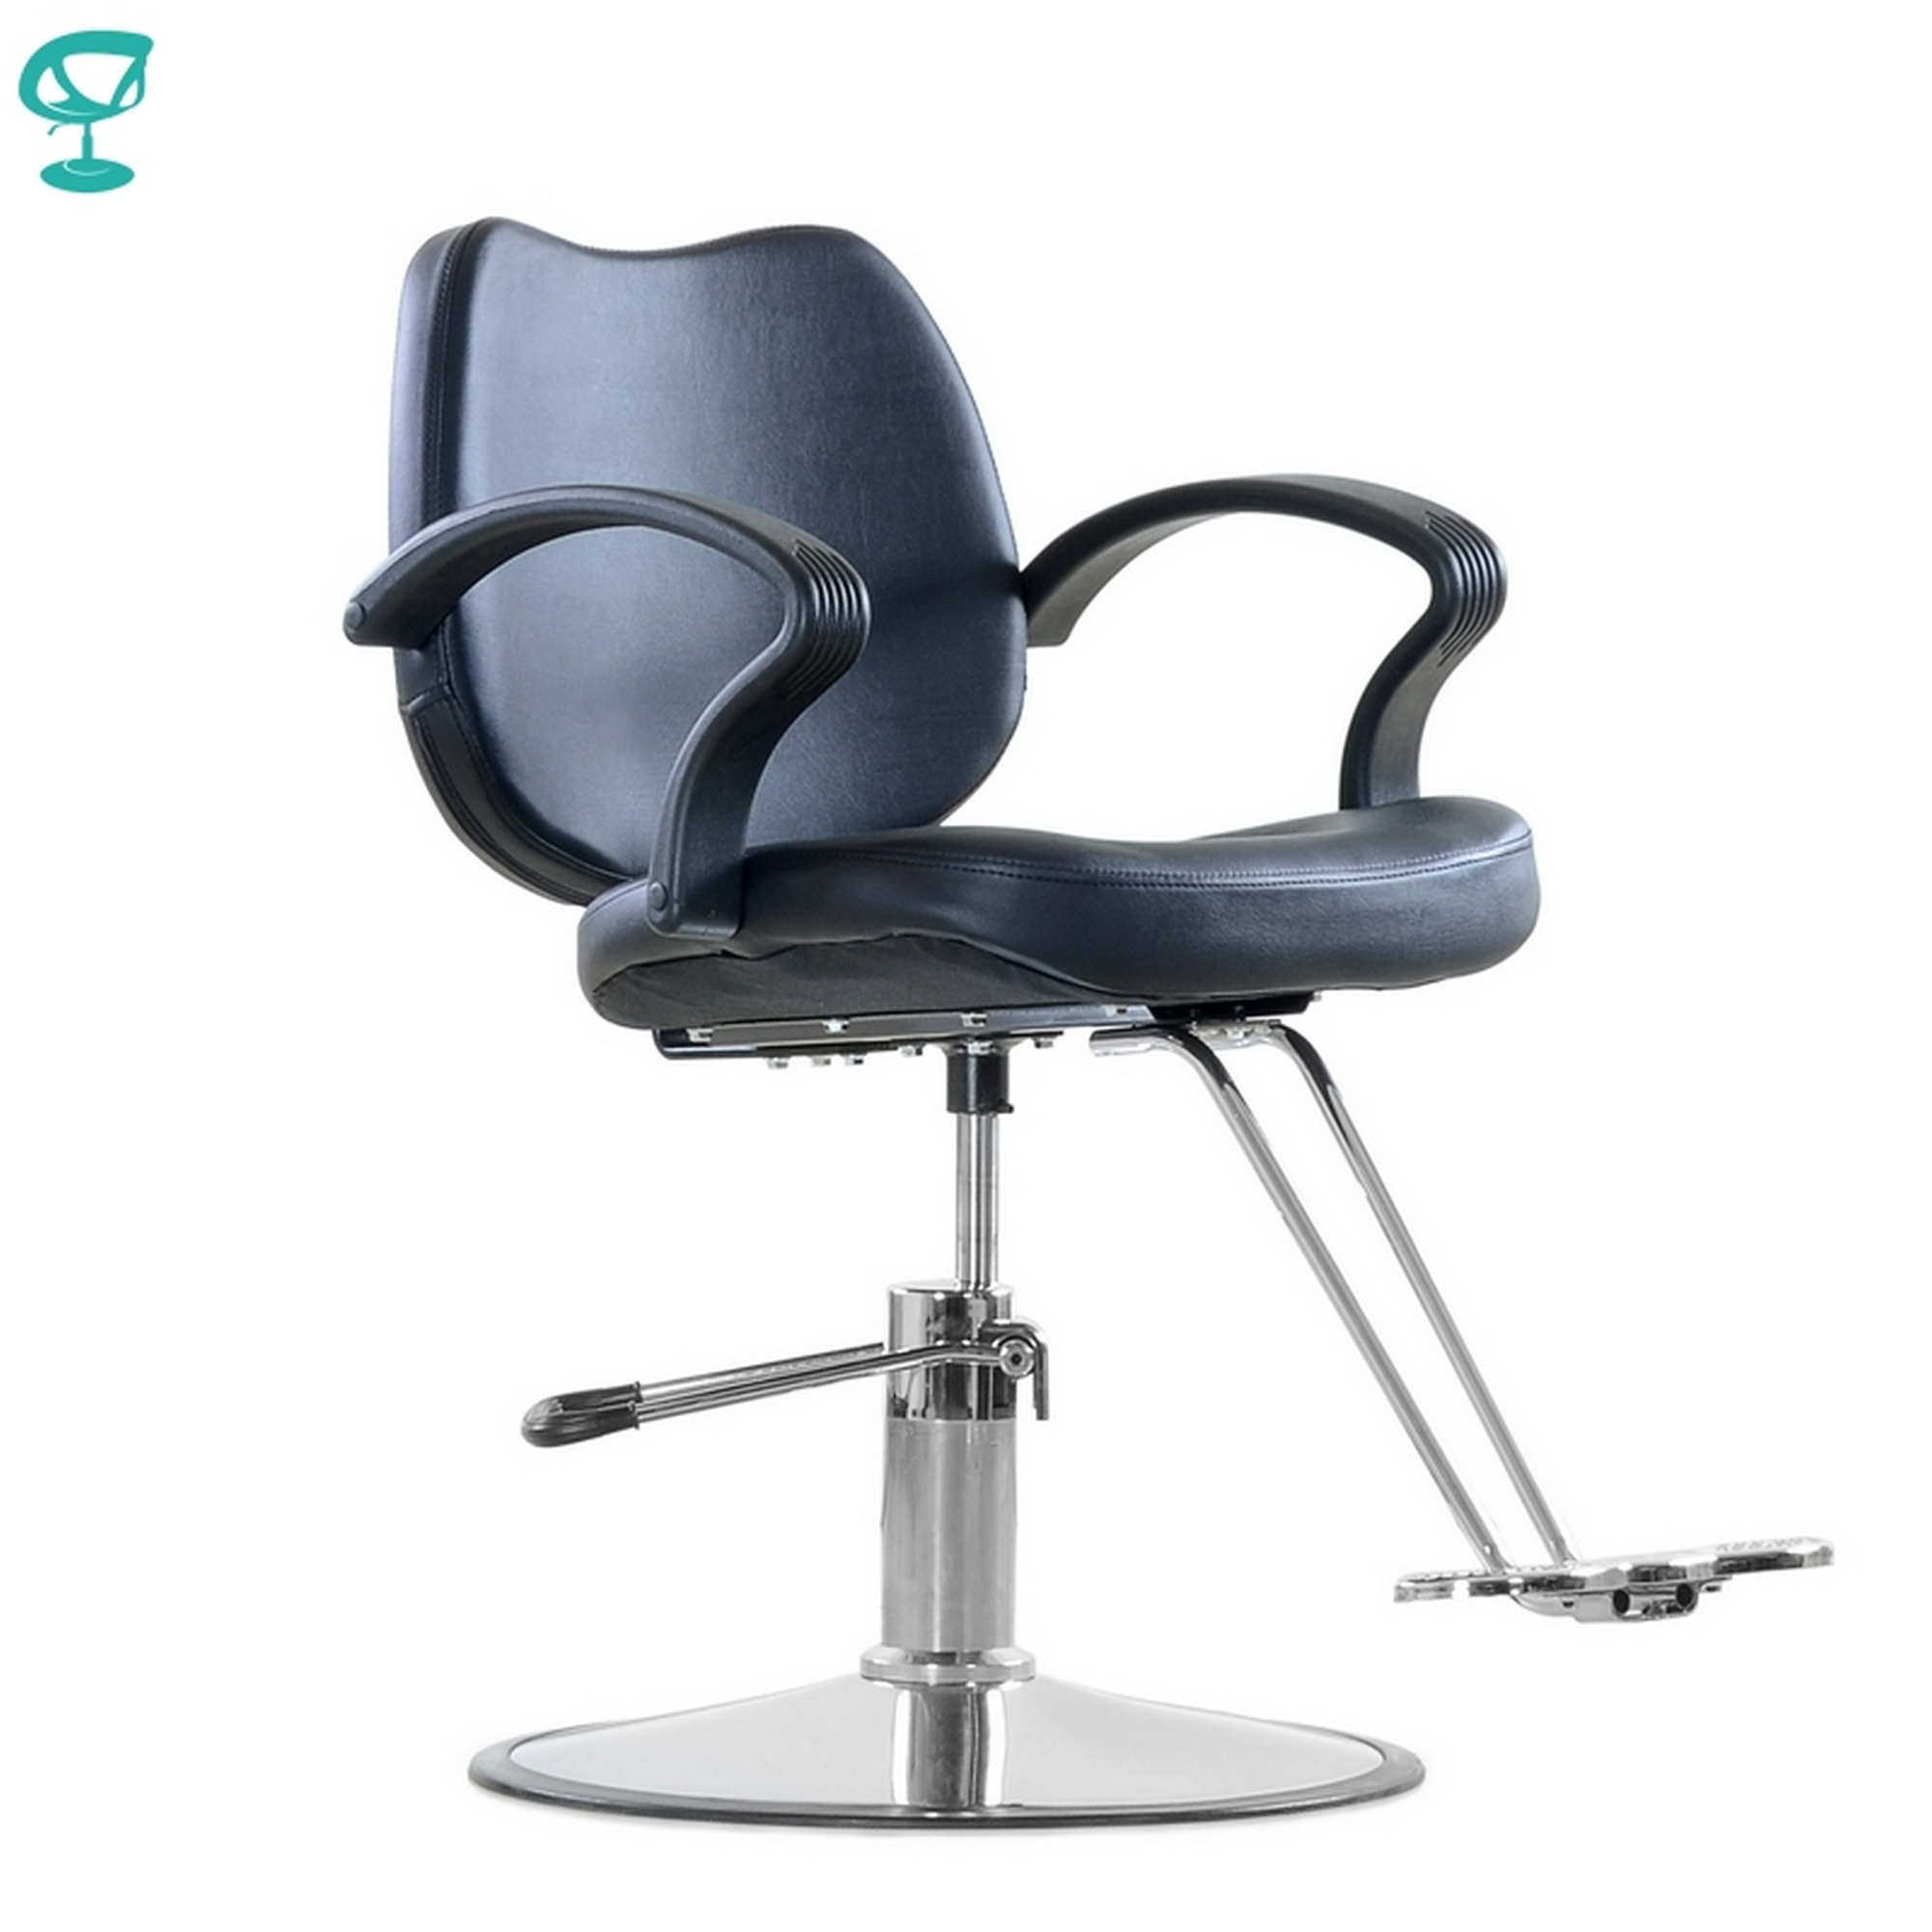 95708 Barneo 6219D Chair Salon Chair Black Chair барбершопа Chair Free Shipping To Russia